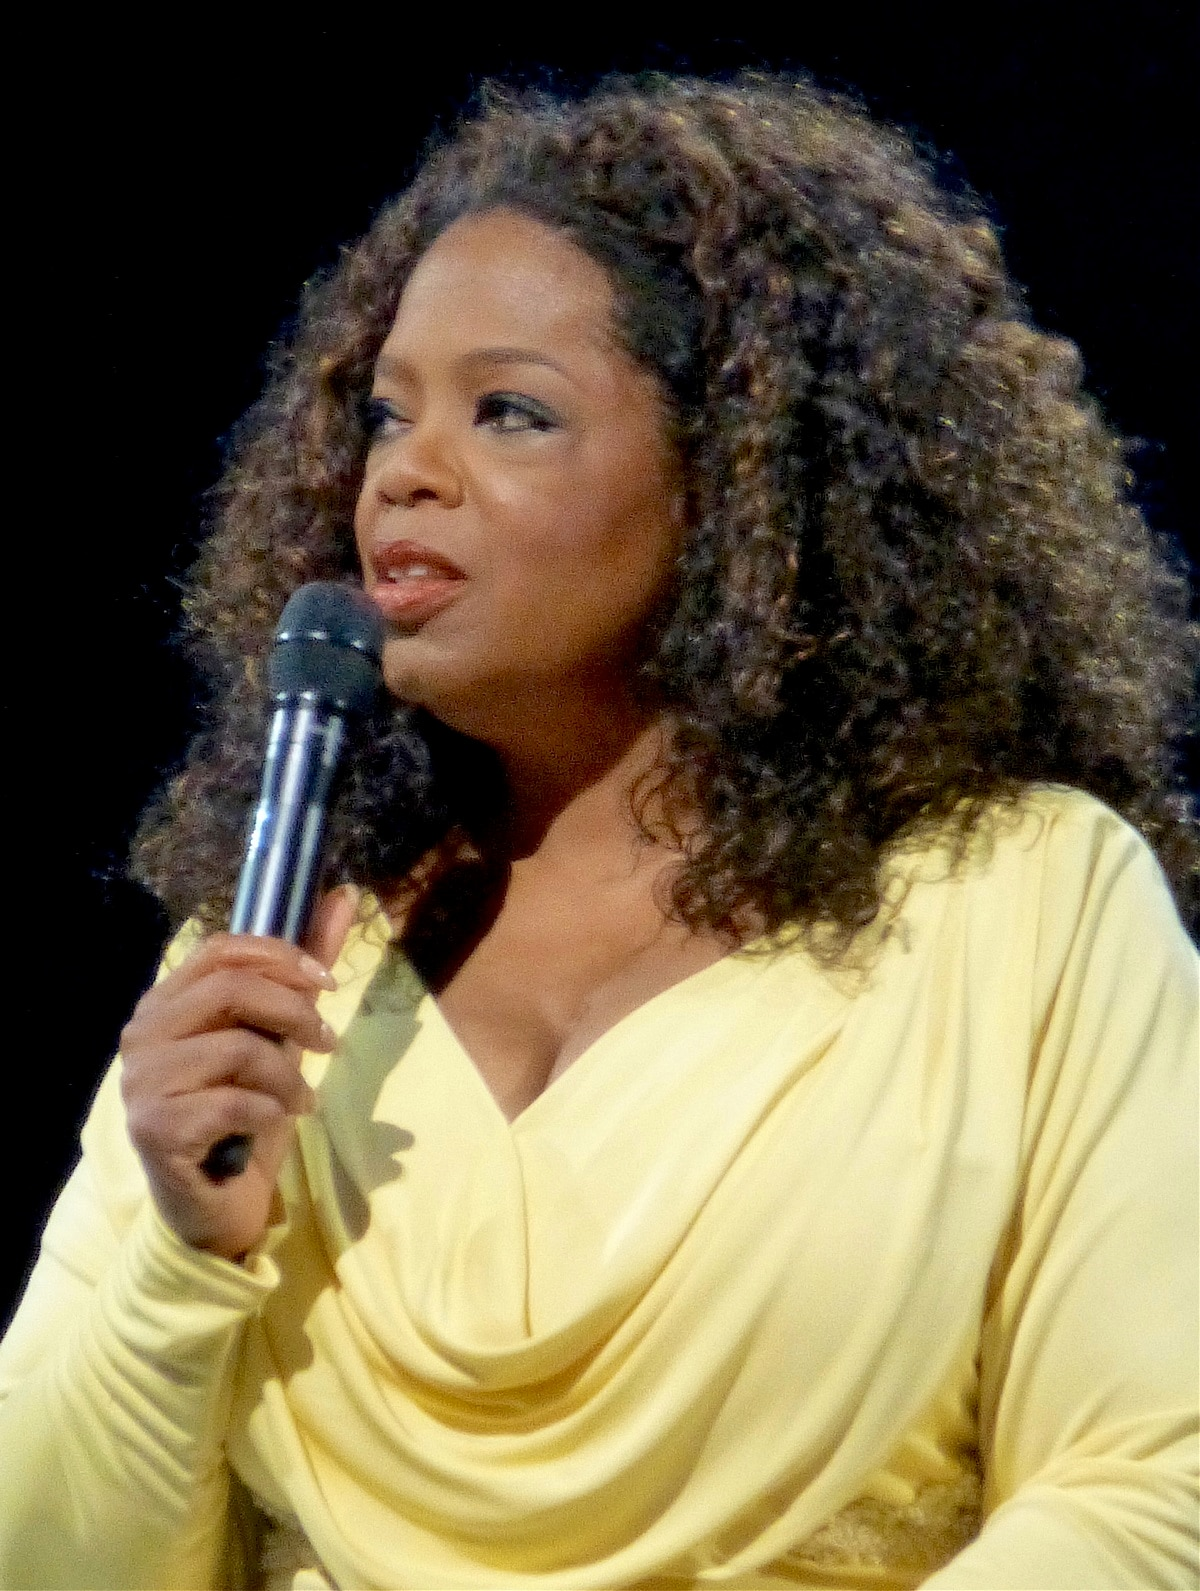 Another popular personality known for her contribution is the entertainment mogul and actress<strong> Oprah Winfrey</strong>.  (Source: Wikimedia Commons)